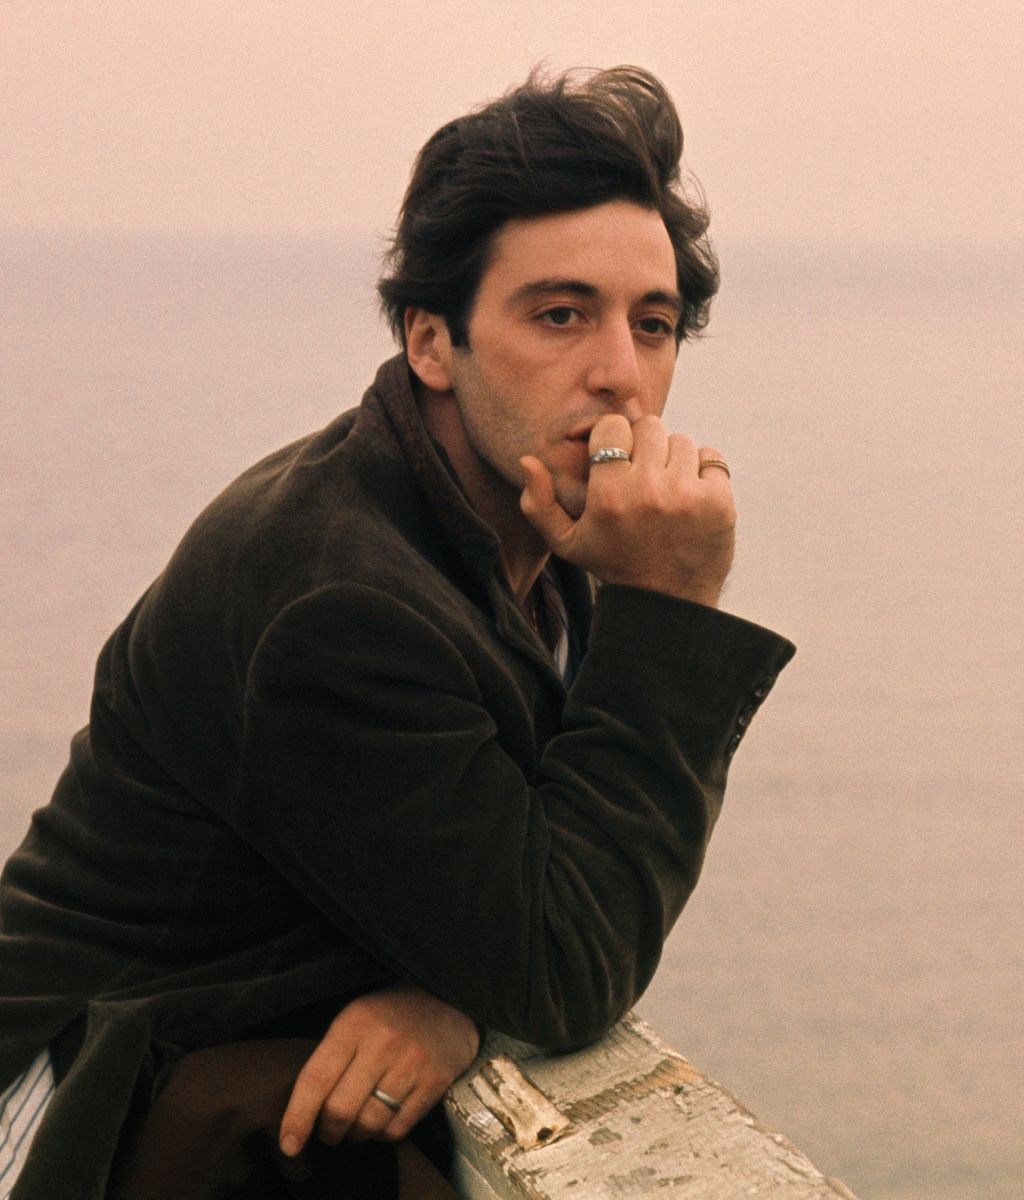 Al Pacino The Godfather Hair